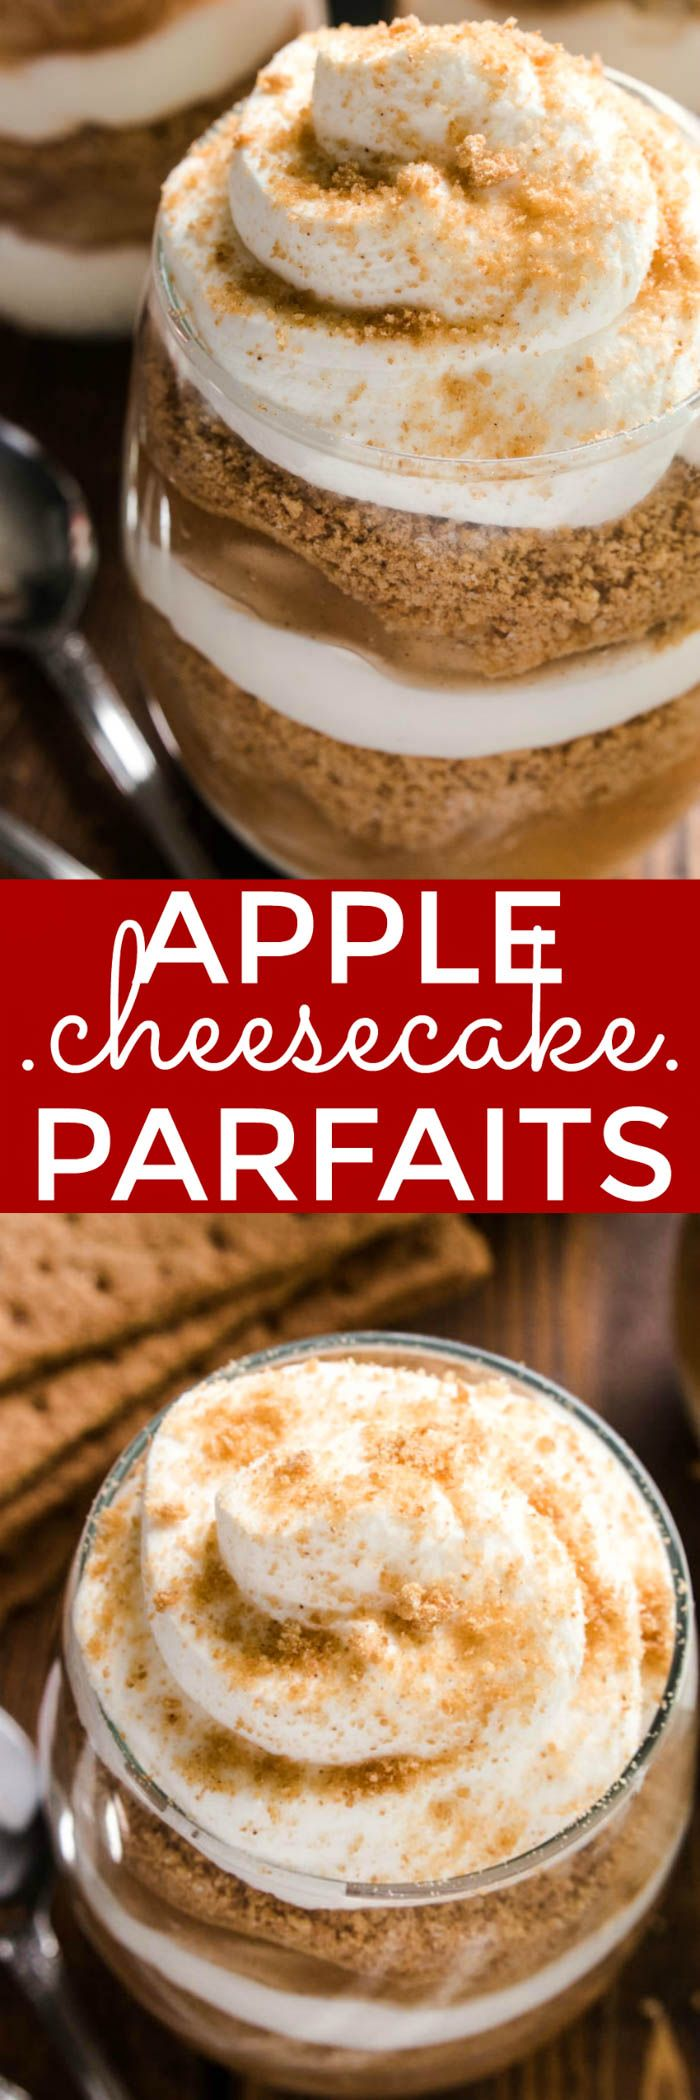 These Apple Cheesecake Parfaits combine two holiday favorites in one delicious no-bake dessert! Made with just five simple ingredients, these parfaits have all the flavors of apple pie, combined with rich, creamy cheesecake and homemade whipped cream. Best of all, they come together in no time at all. Just 10 minutes is all you need for a rich, decadent dessert that's worthy of any holiday celebration. Why choose between cheesecake and pie when you can have both? These Apple Cheesecake…